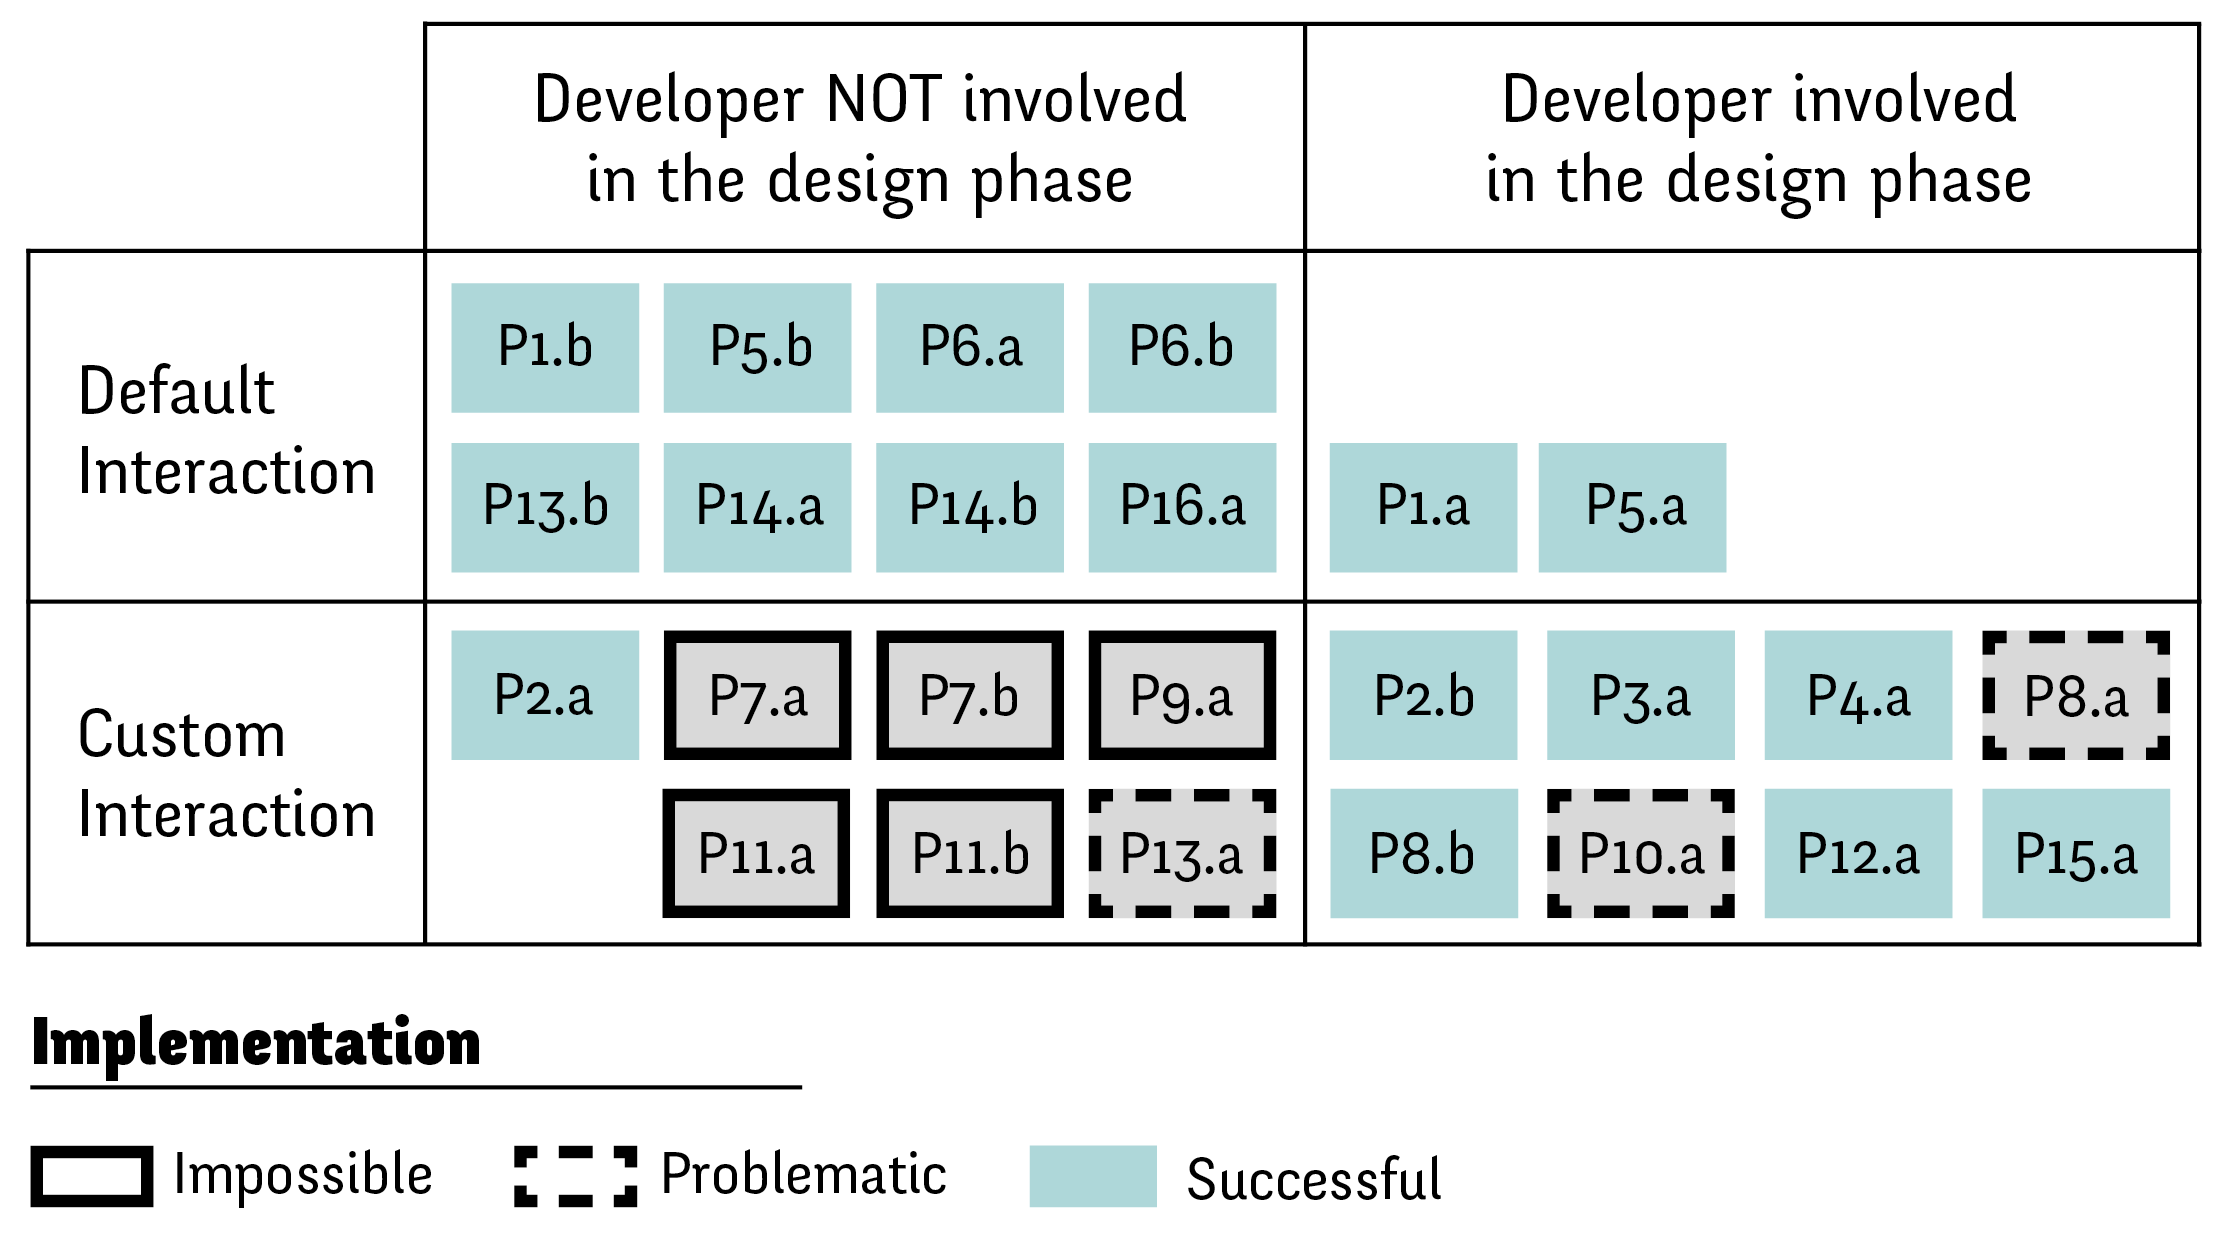 Impact of early developer involvment